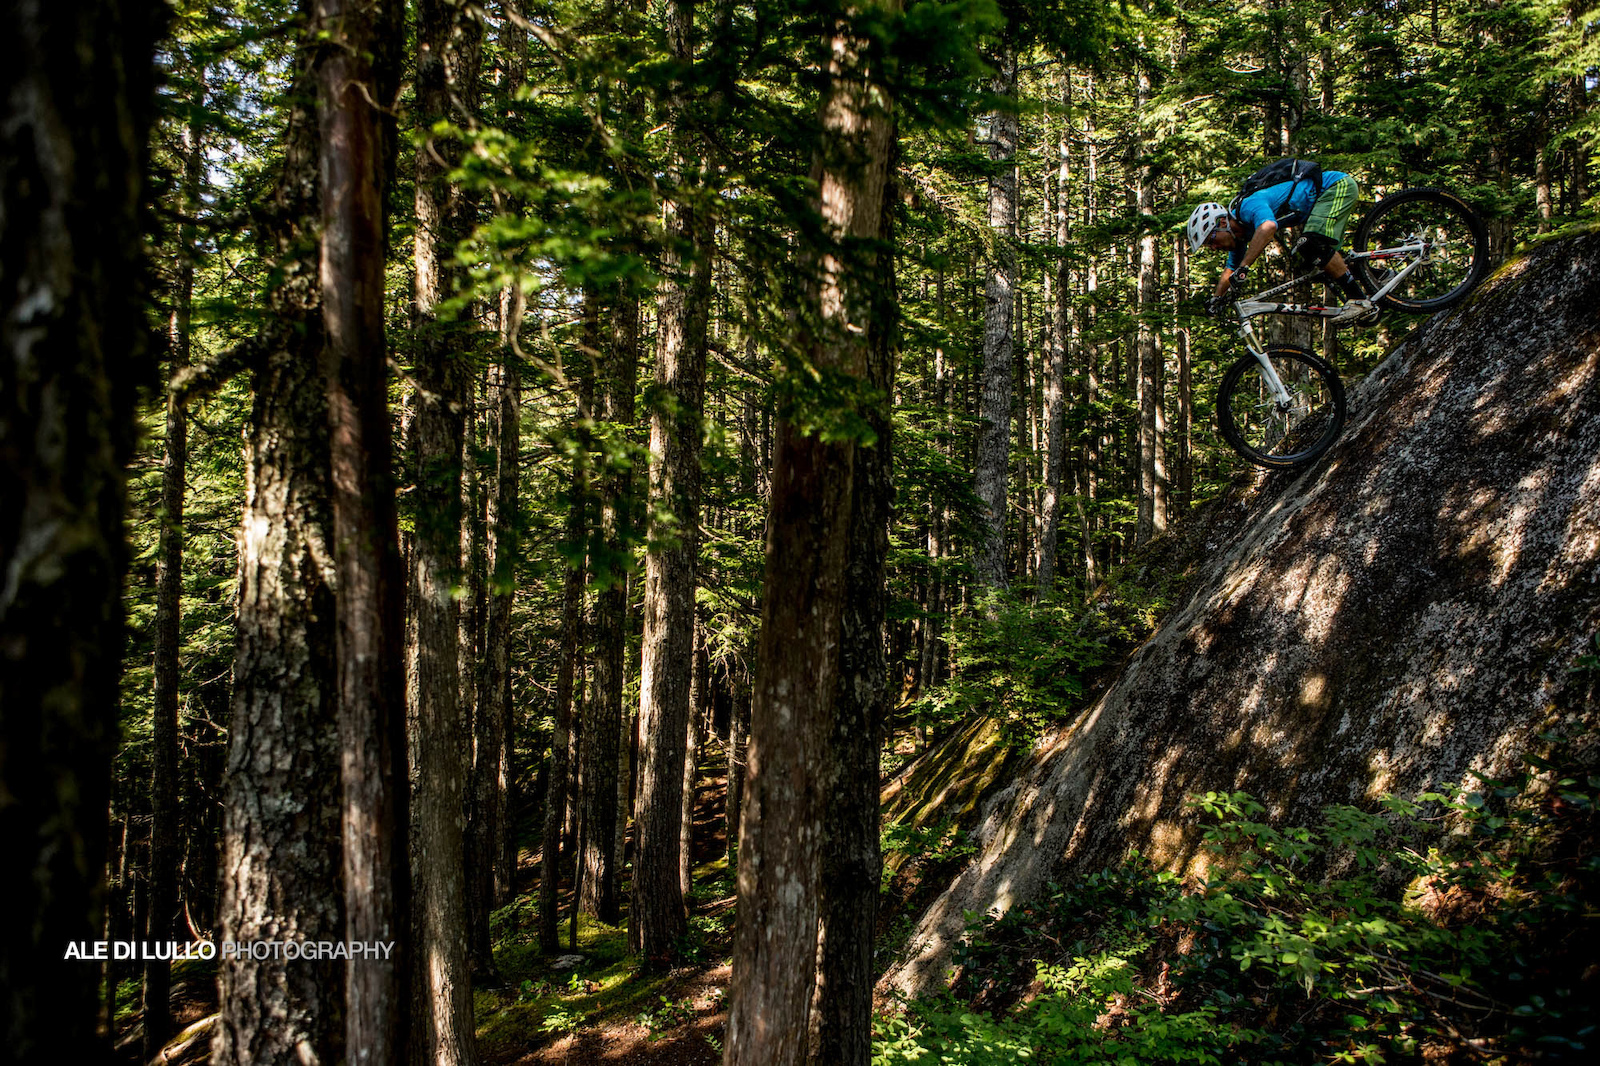 Steep and Deep in the woods. The rock lines stack up on top of each other like a waterfall.